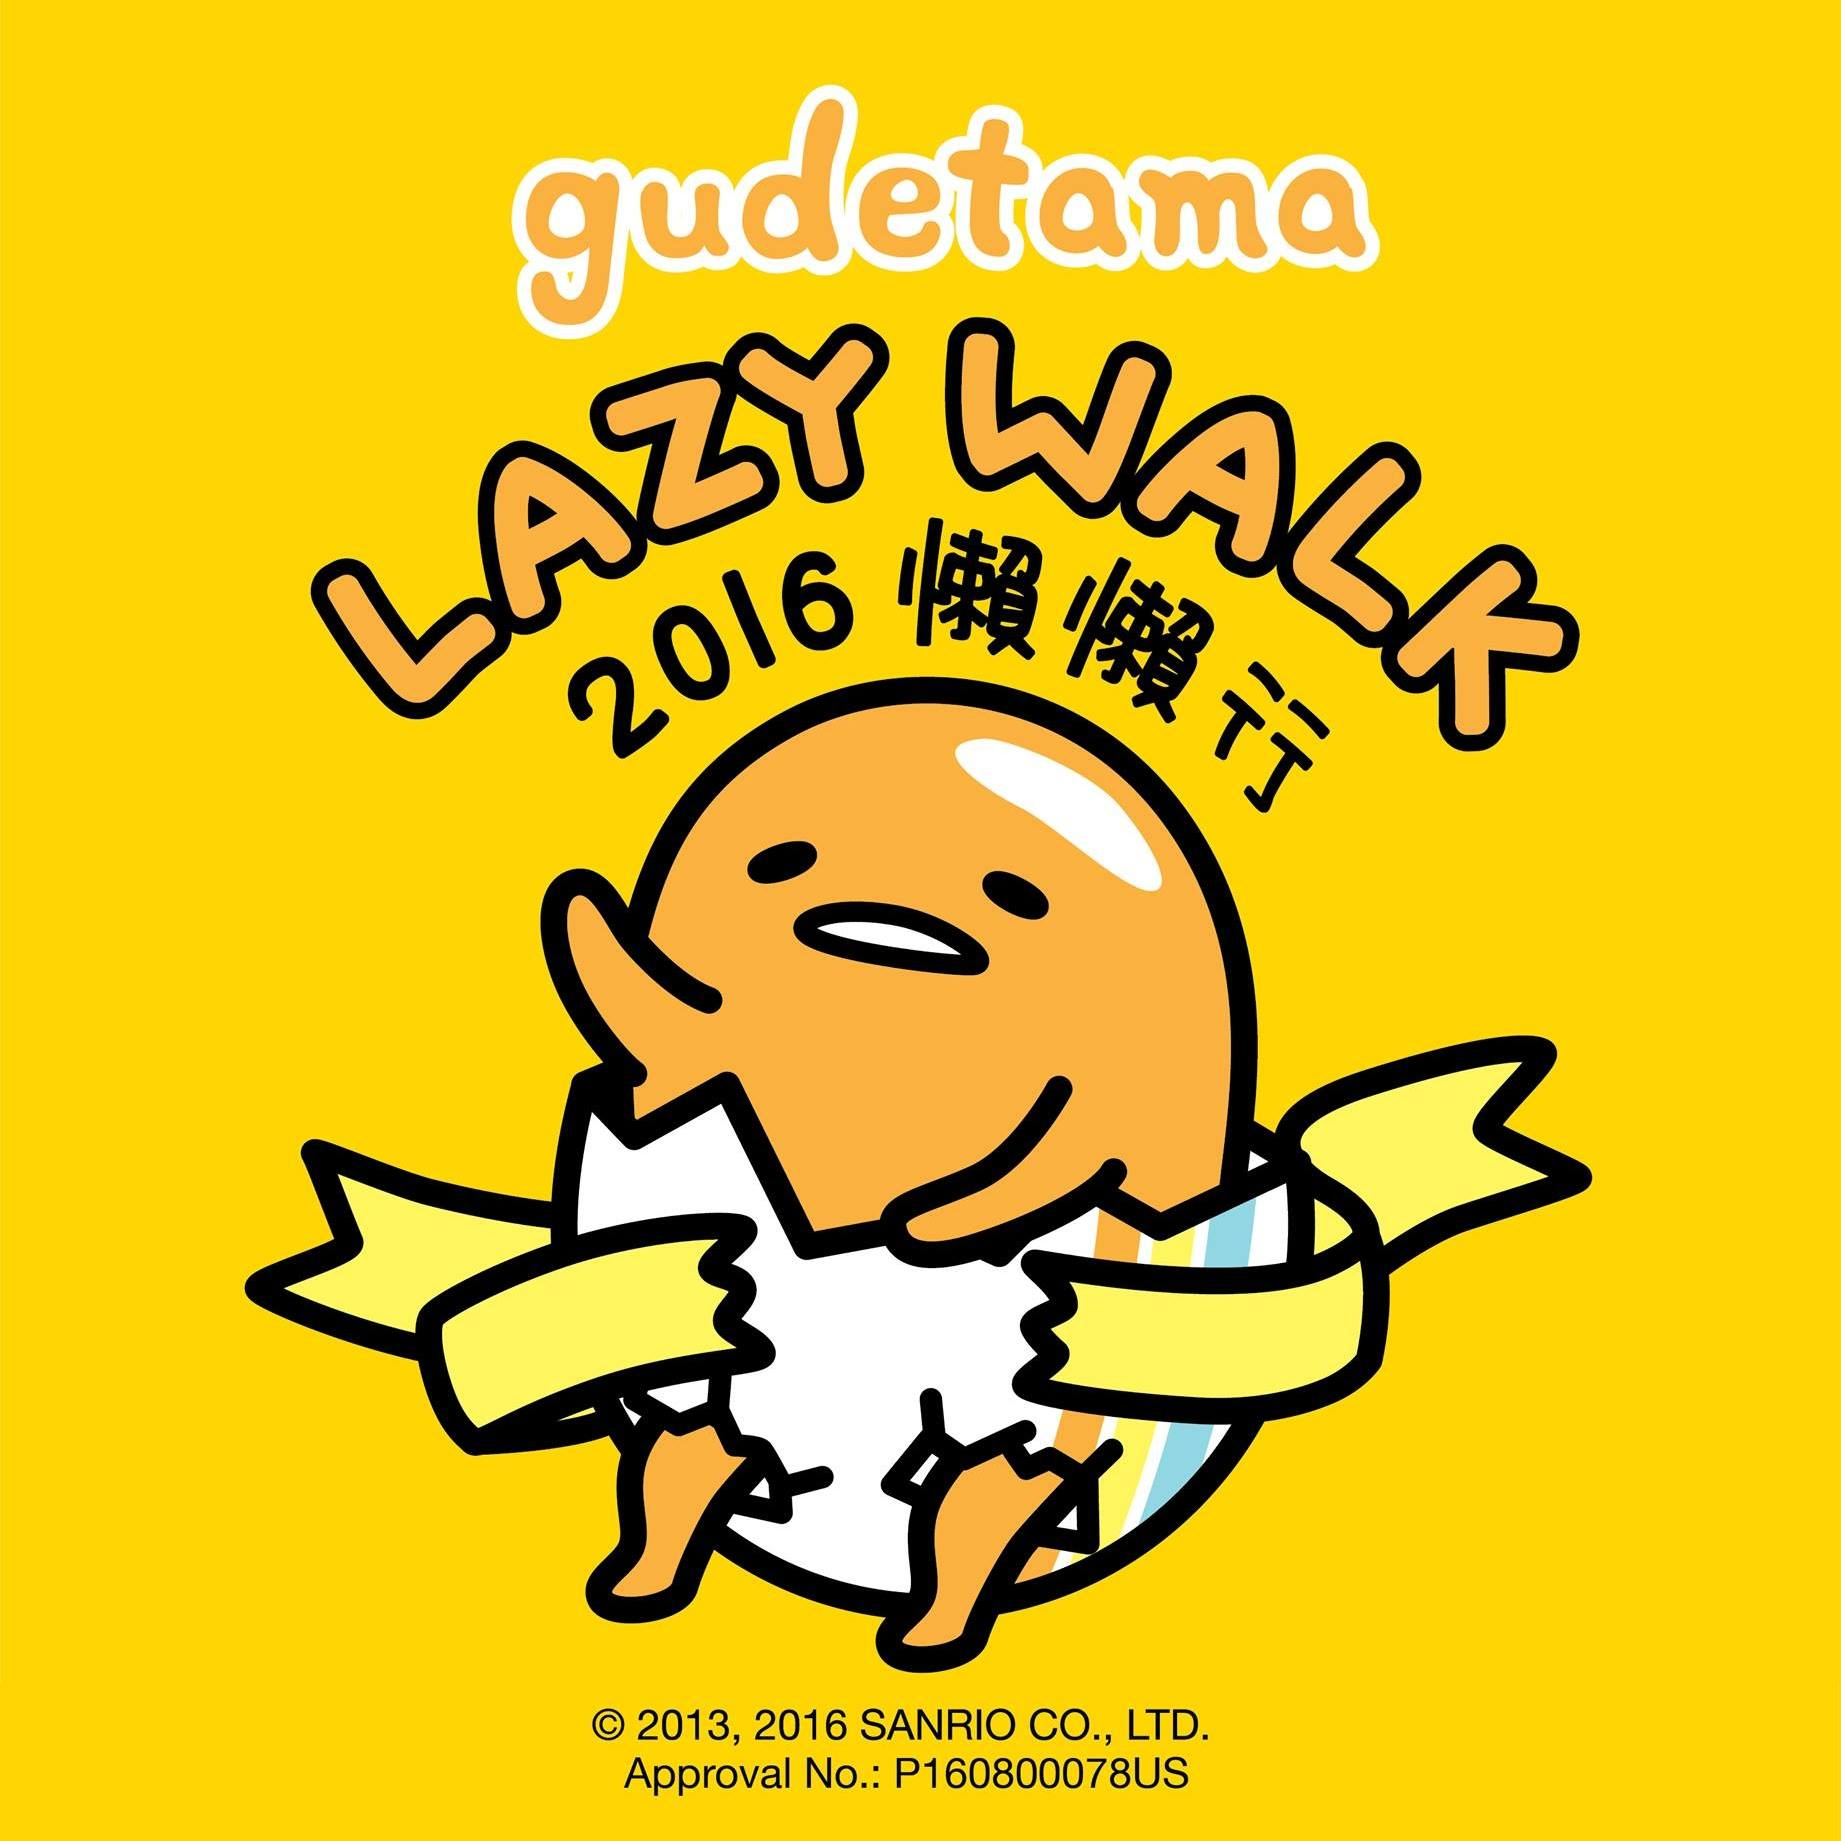 Gudetama Lazy Walk 2016